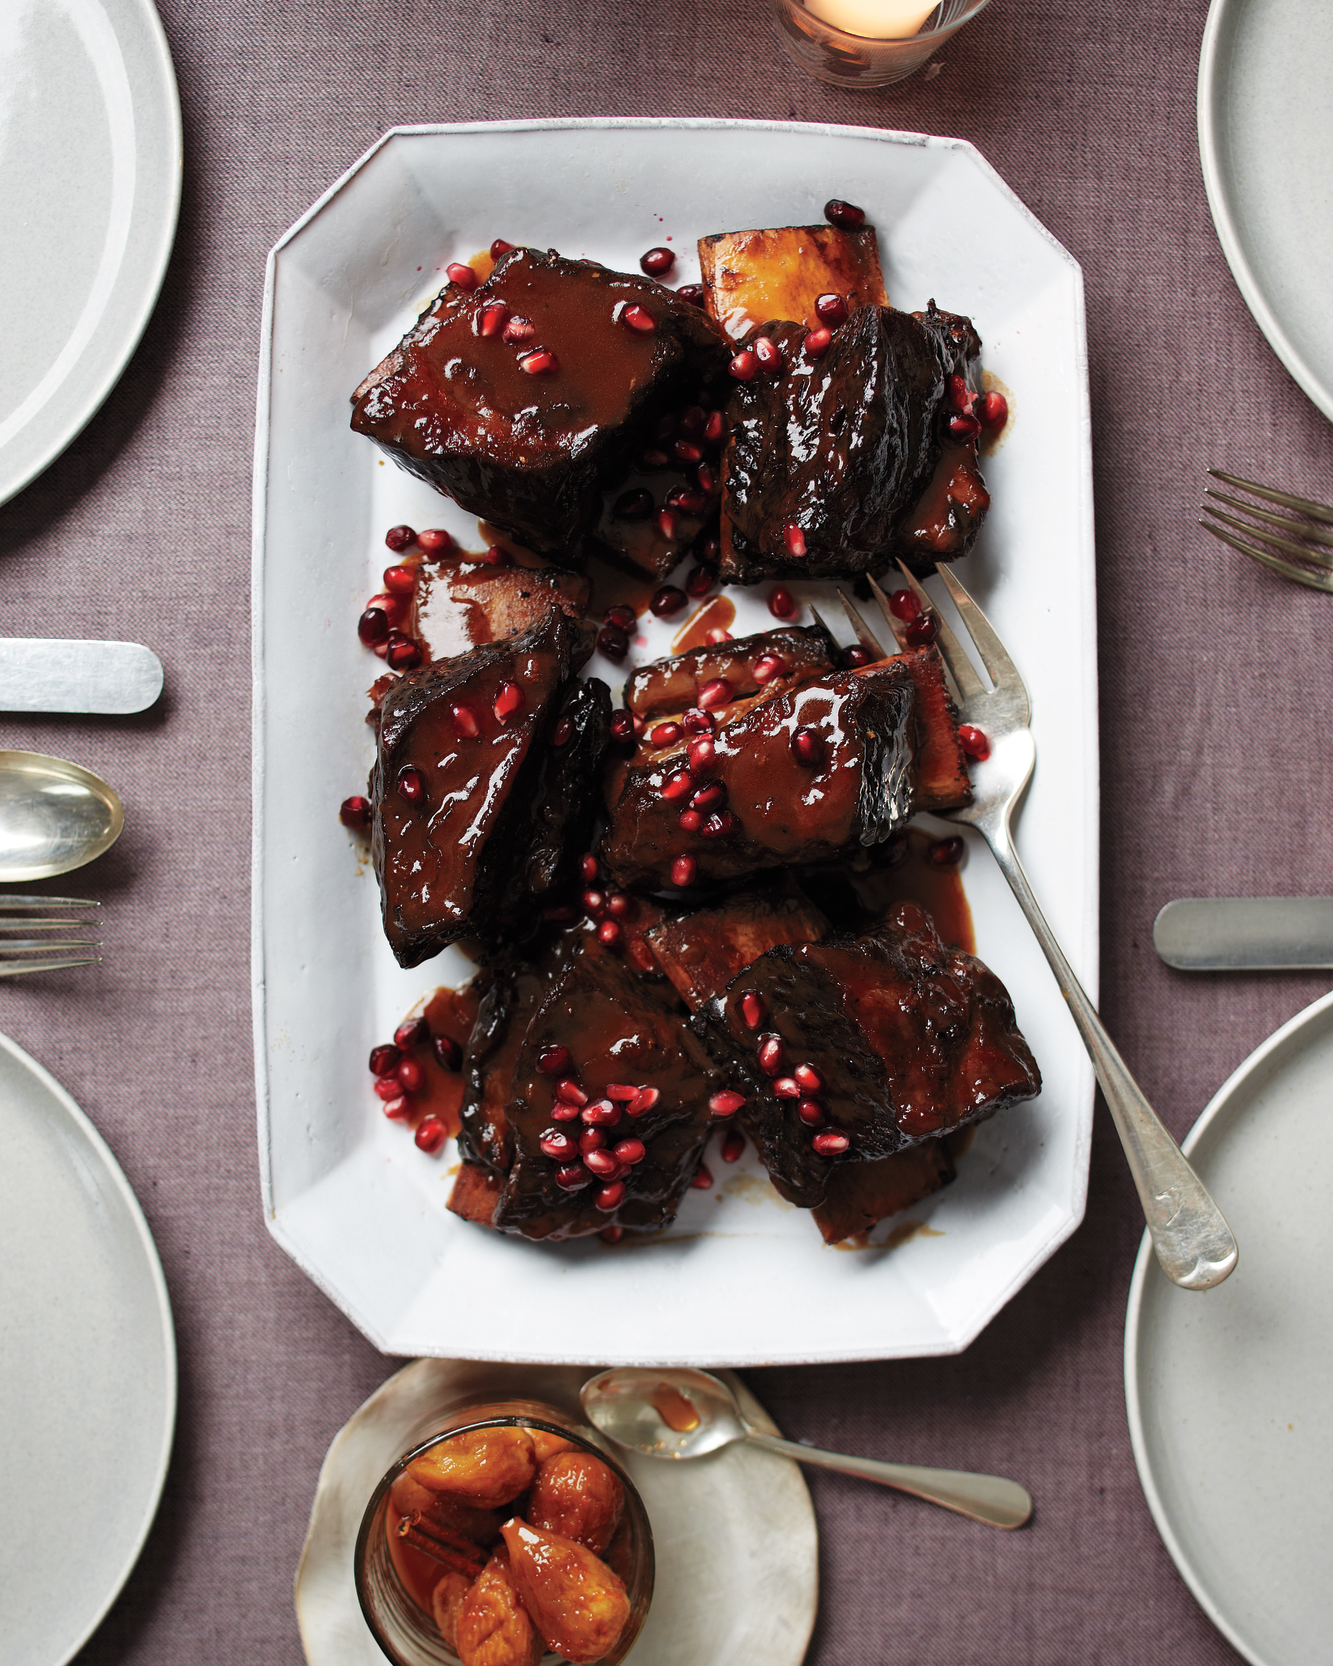 Pomegranate-Braised Short Ribs